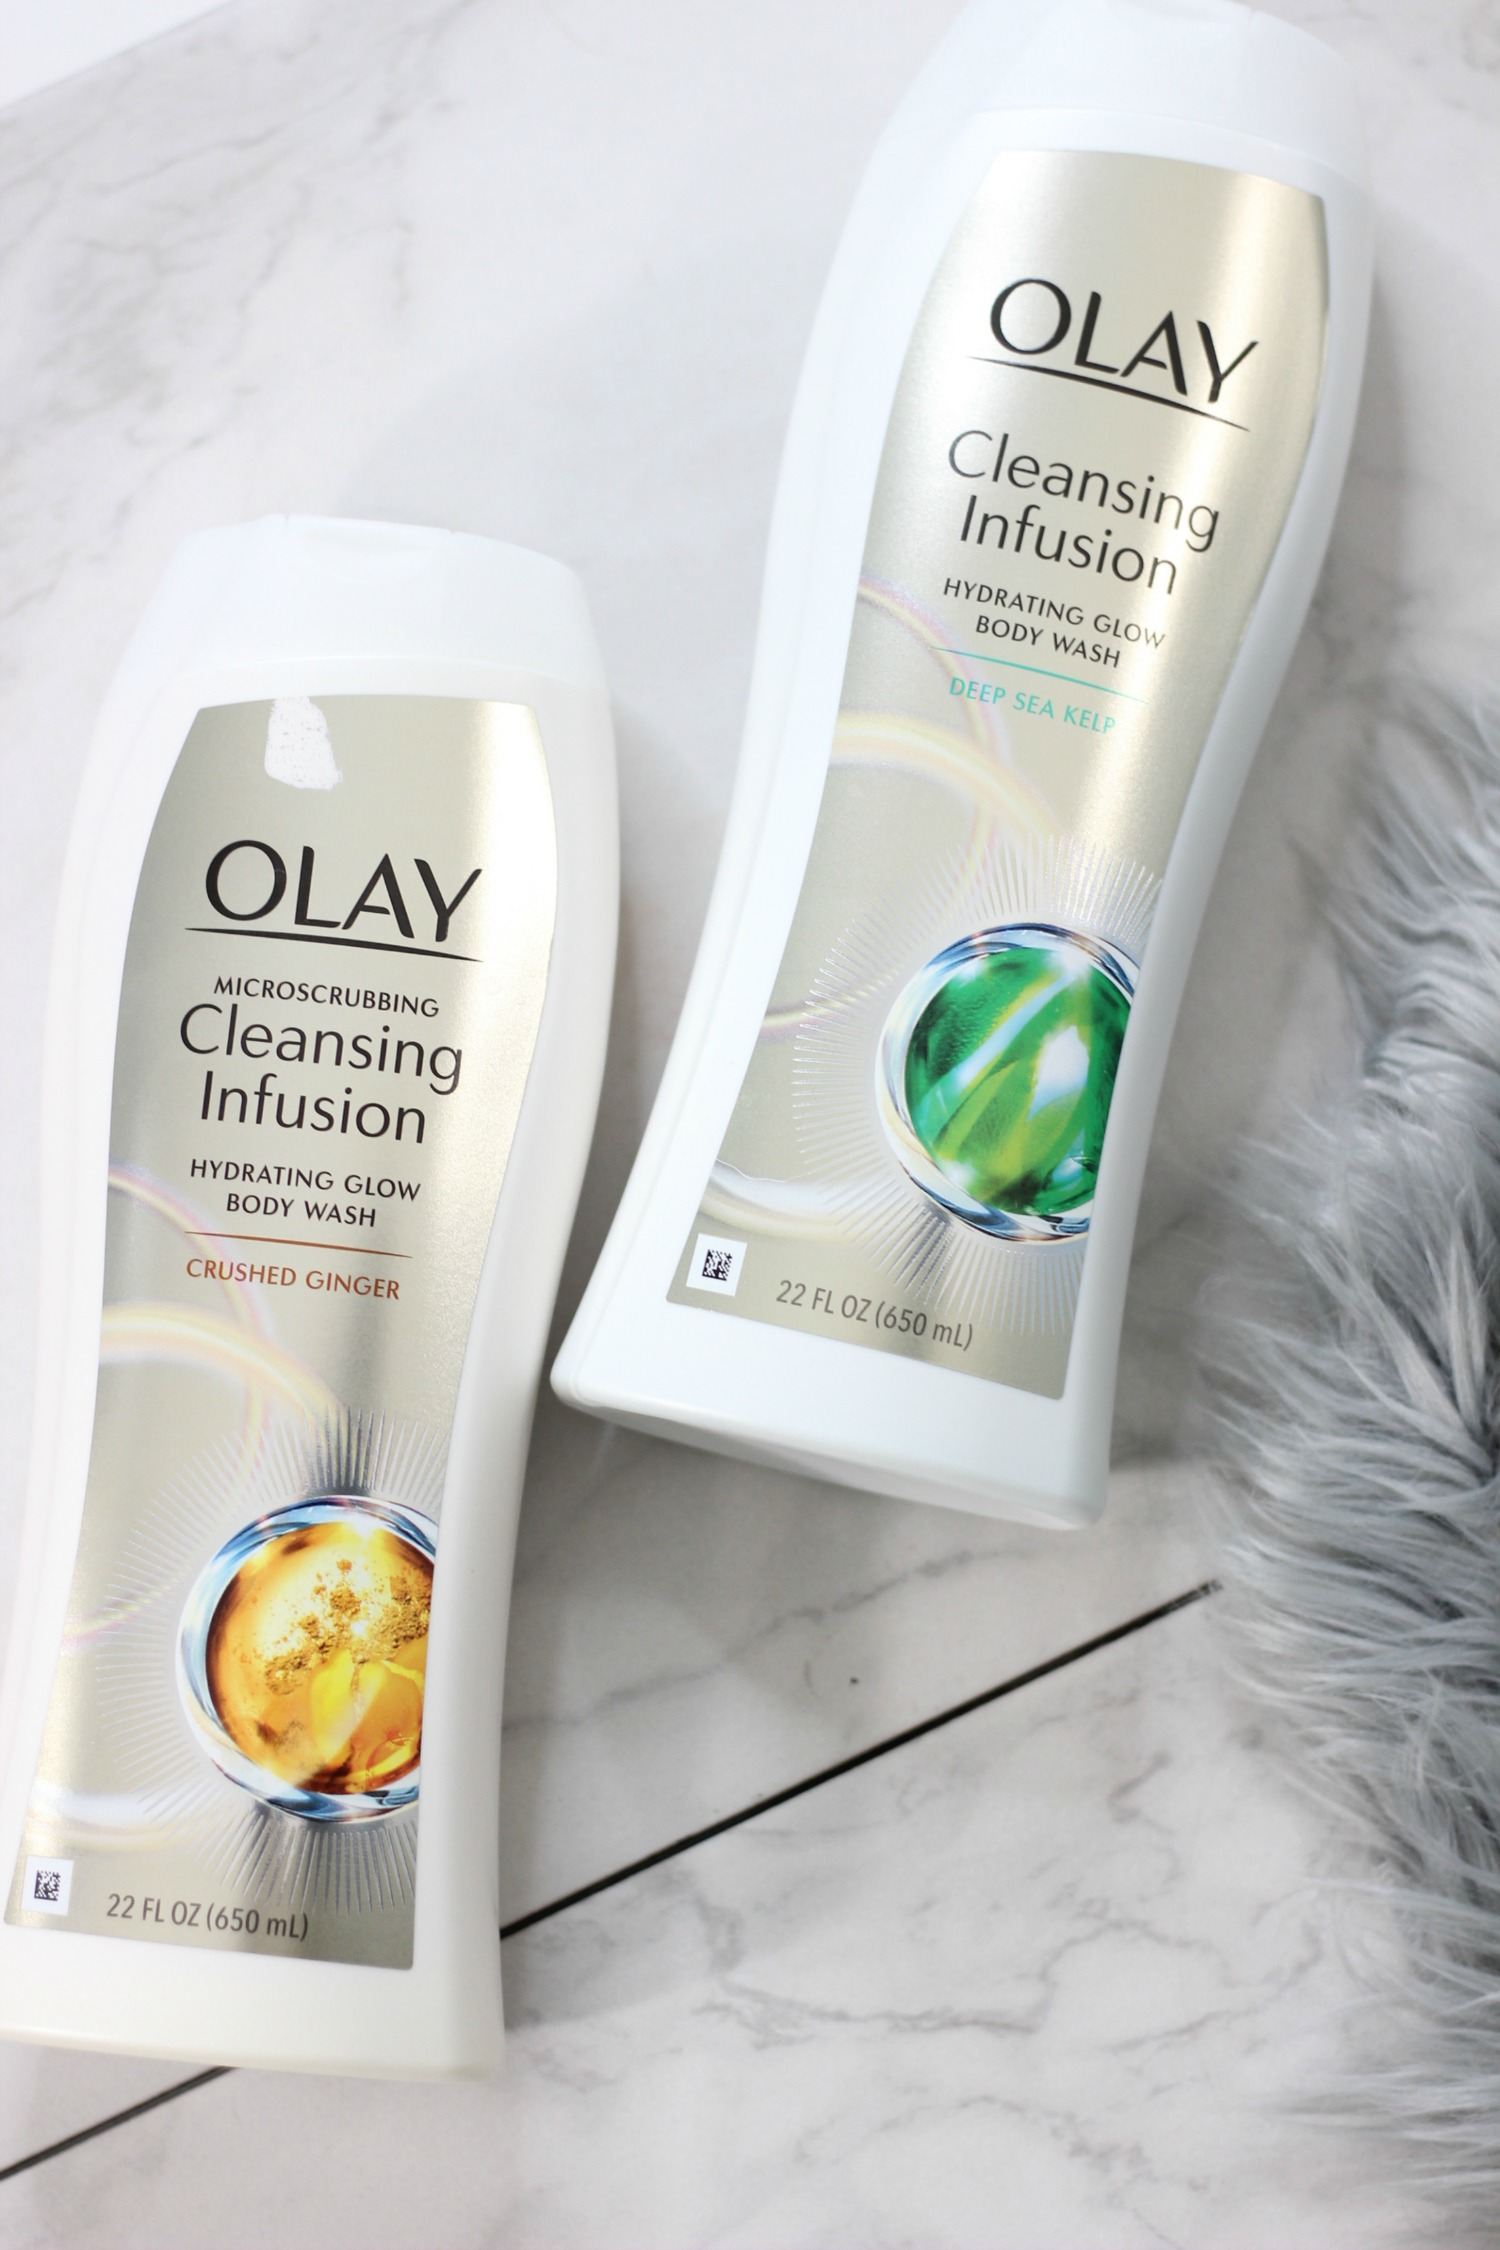 Time To Glow Up | New Beauty Habits For 2018 With Olay Cleansing Infusions Bodywash